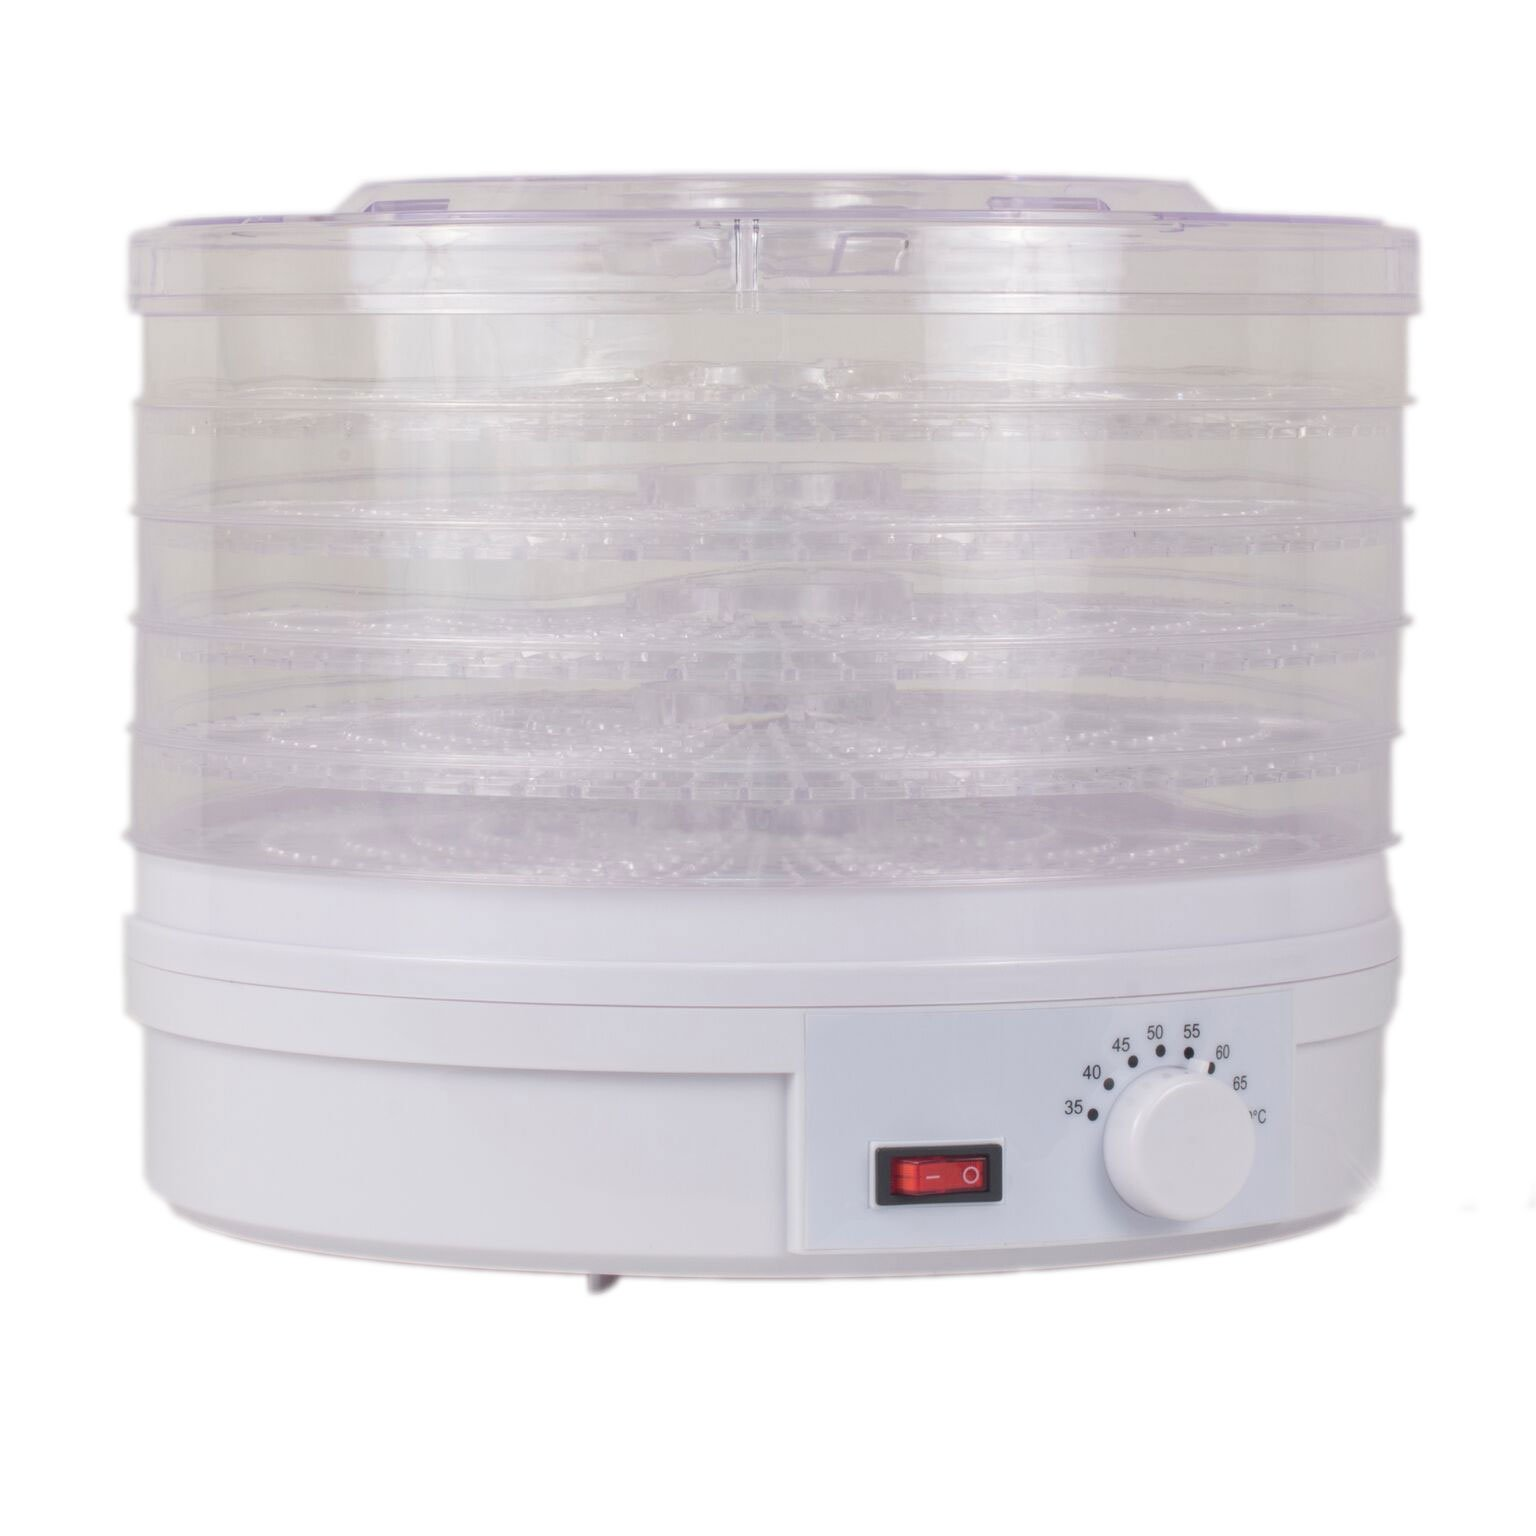 Westinghouse WFD101W New Food Dehydrator, 245 Watts, White Base, 5 Stackable Trays by Westinghouse